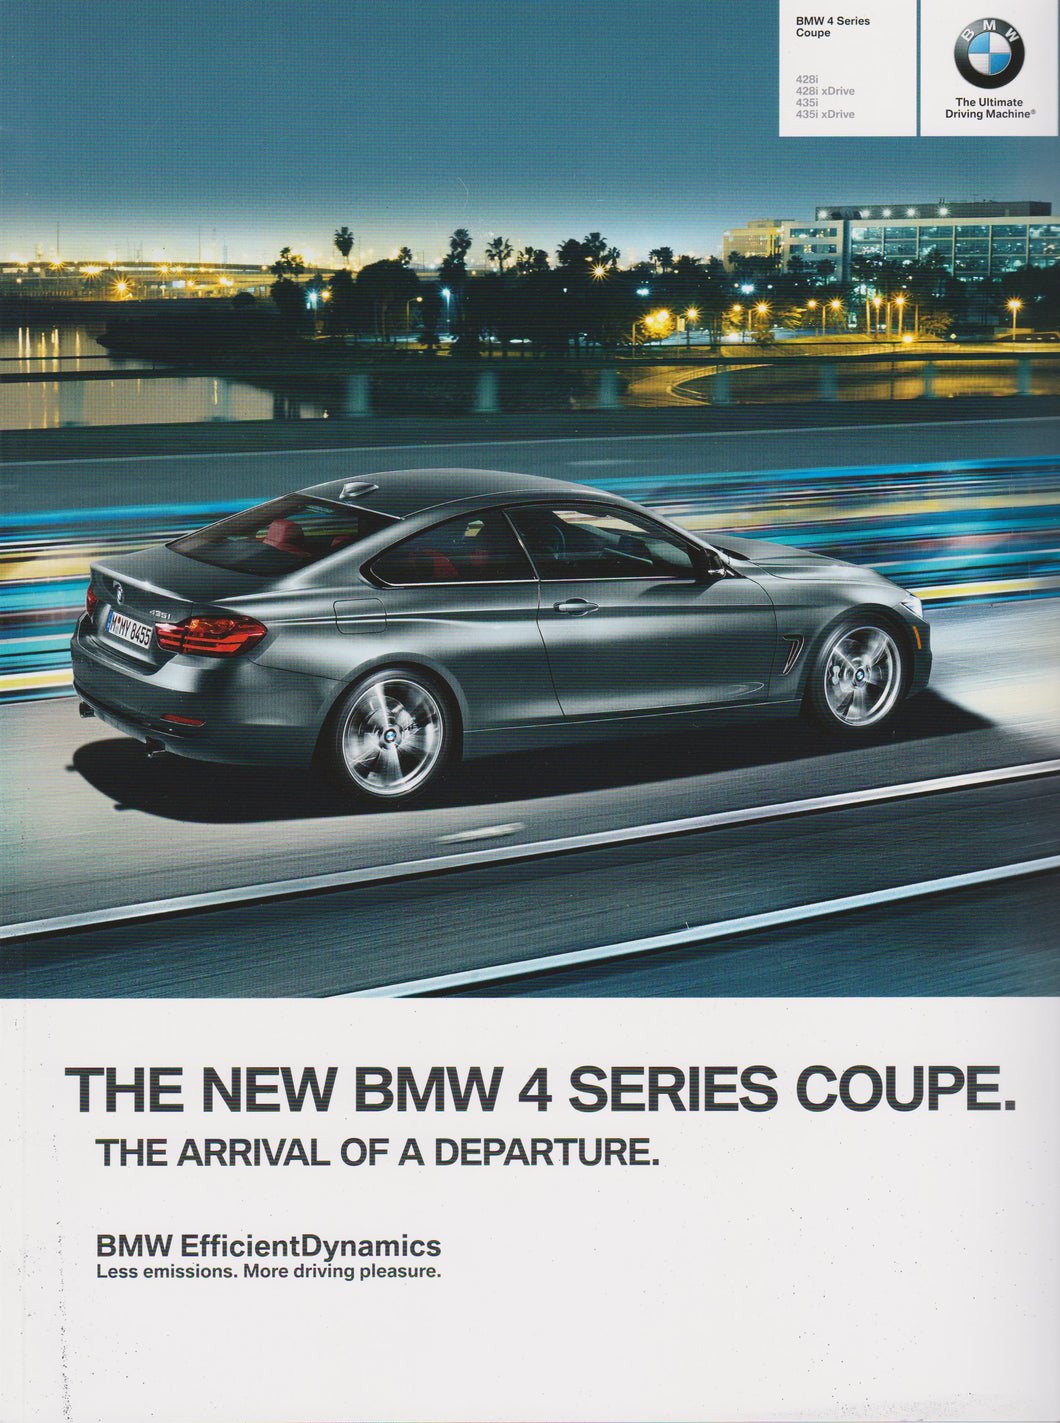 Brochure - The New BMW 4 Series Coupe. 428i/428i xDrive 435i/435i xDrive - 2014 F32 Brochure